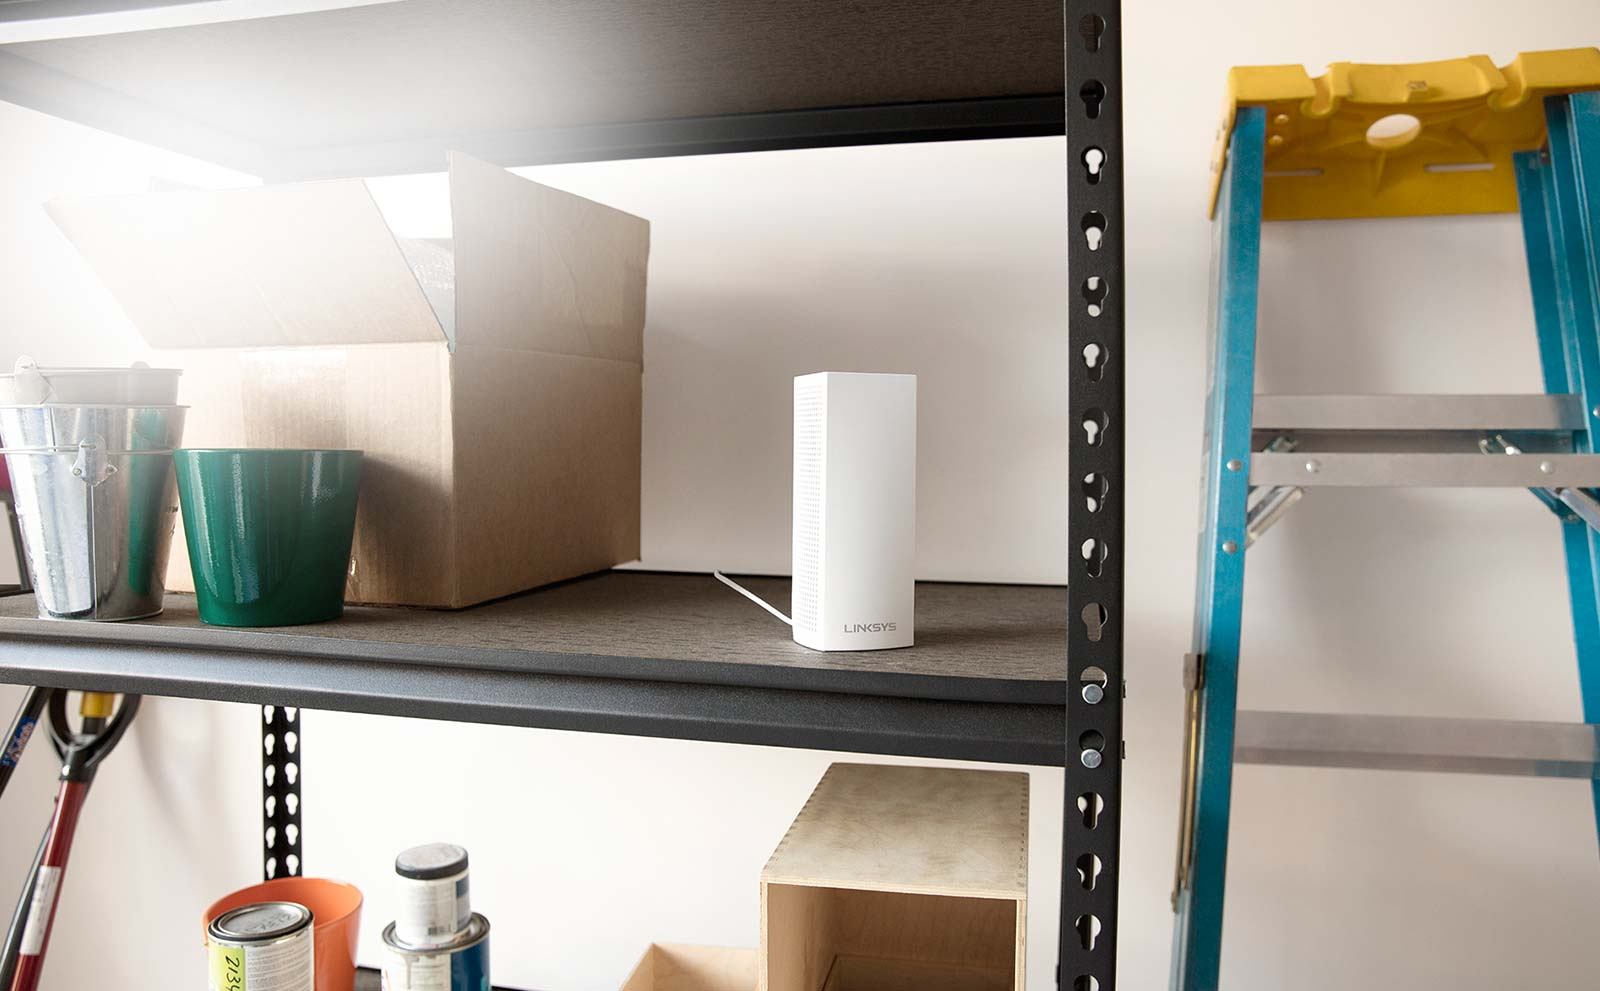 Velop node on a garage shelf